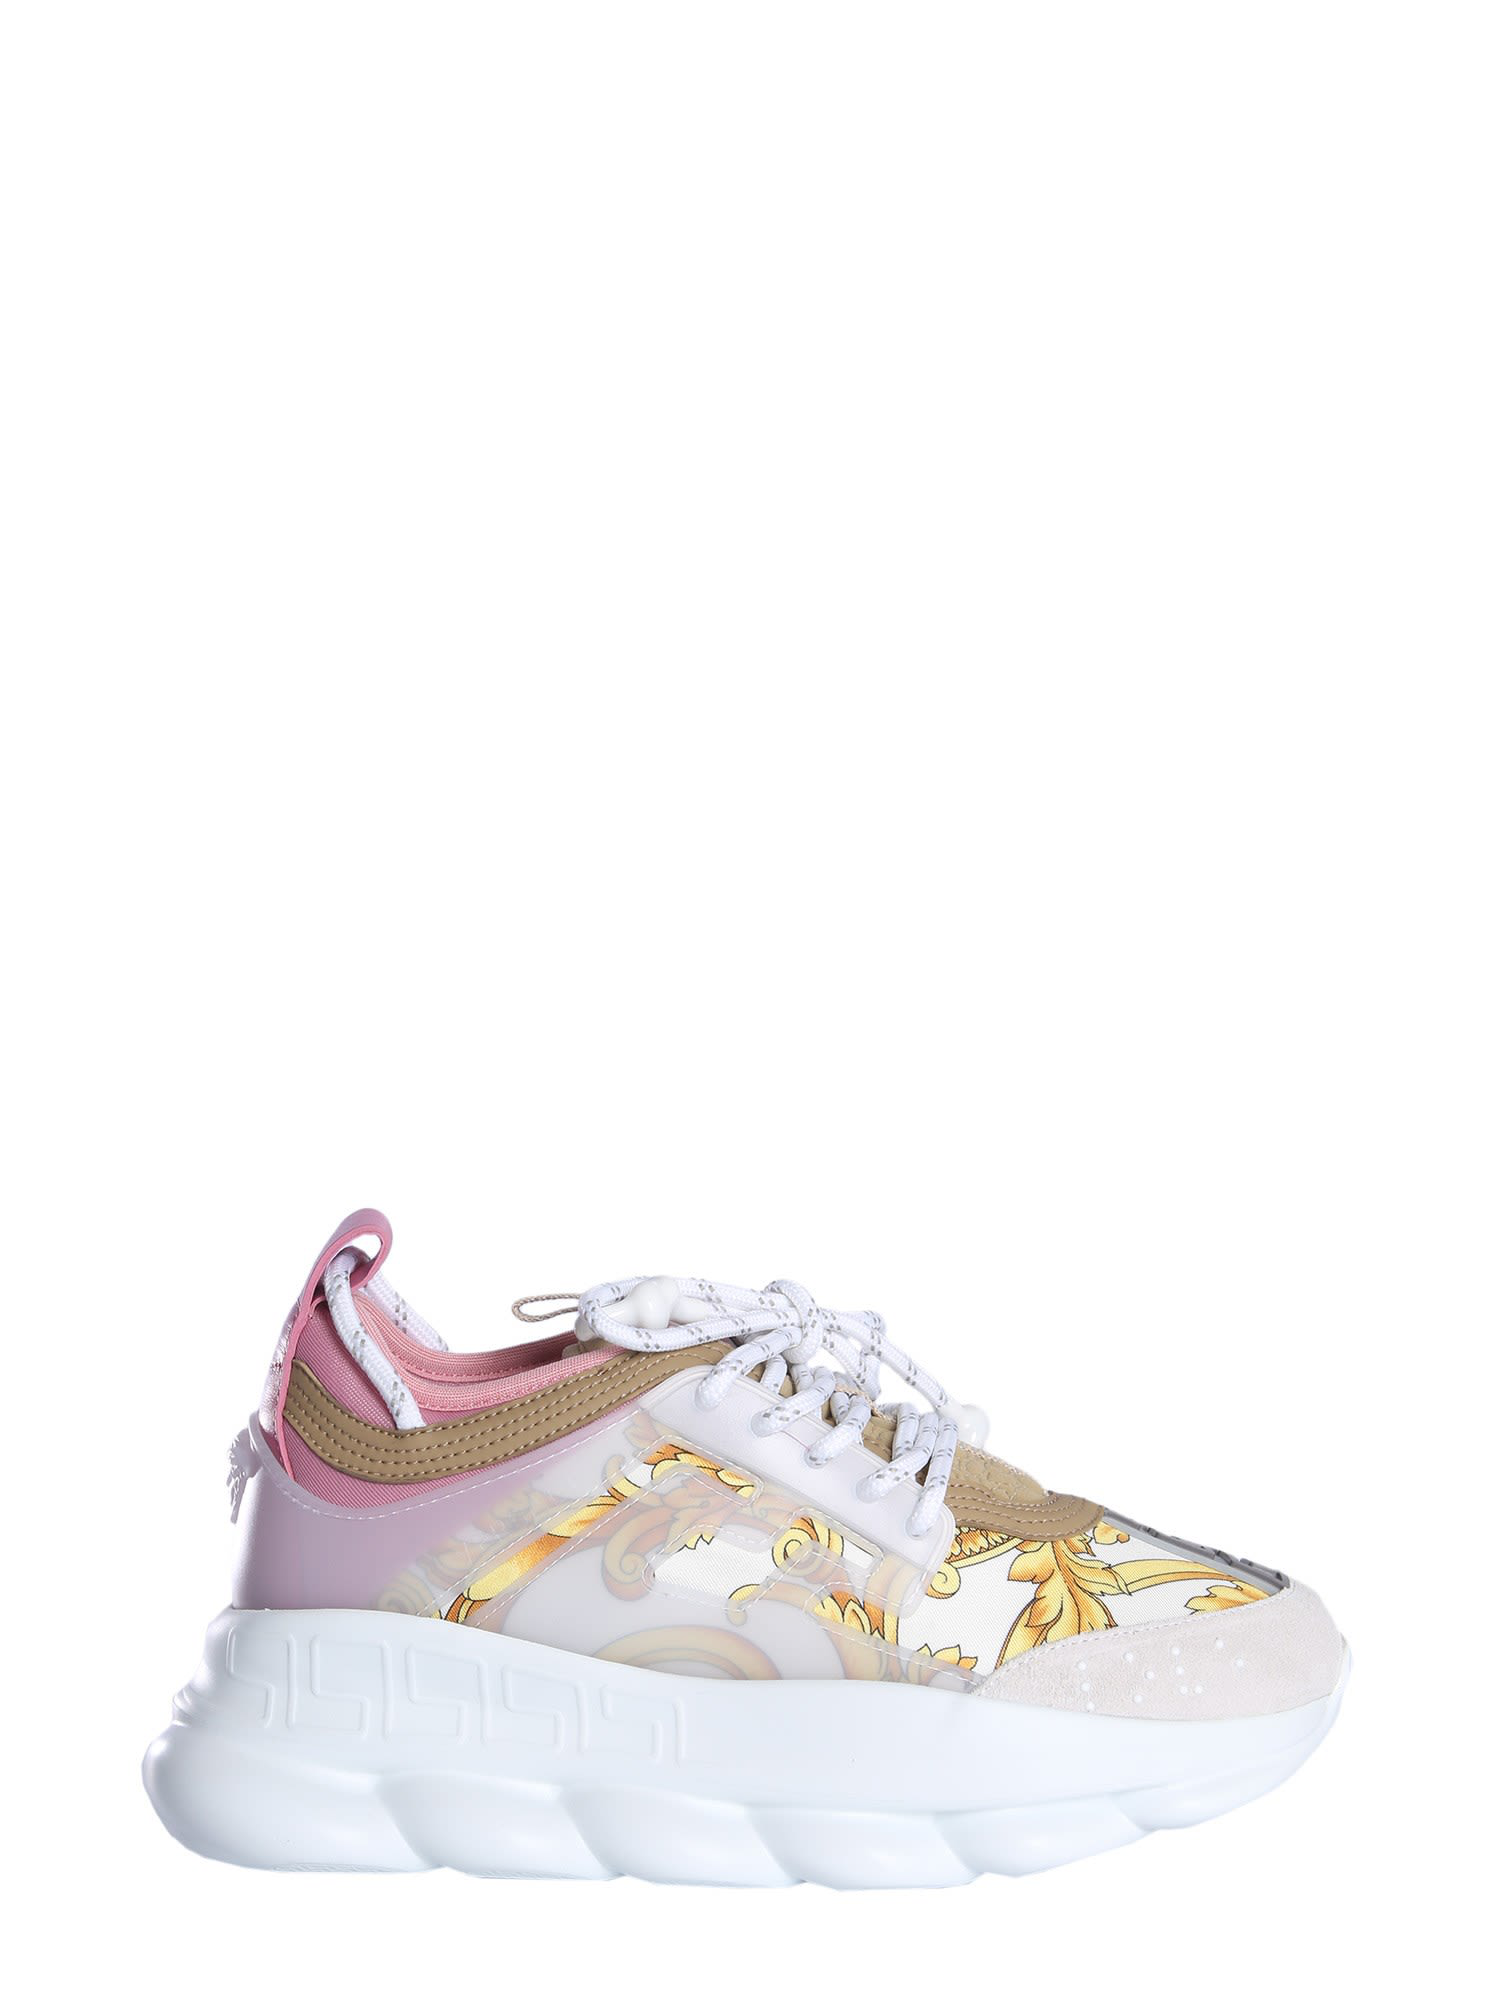 f8ac7650784 Versace Chain Reaction Printed Canvas